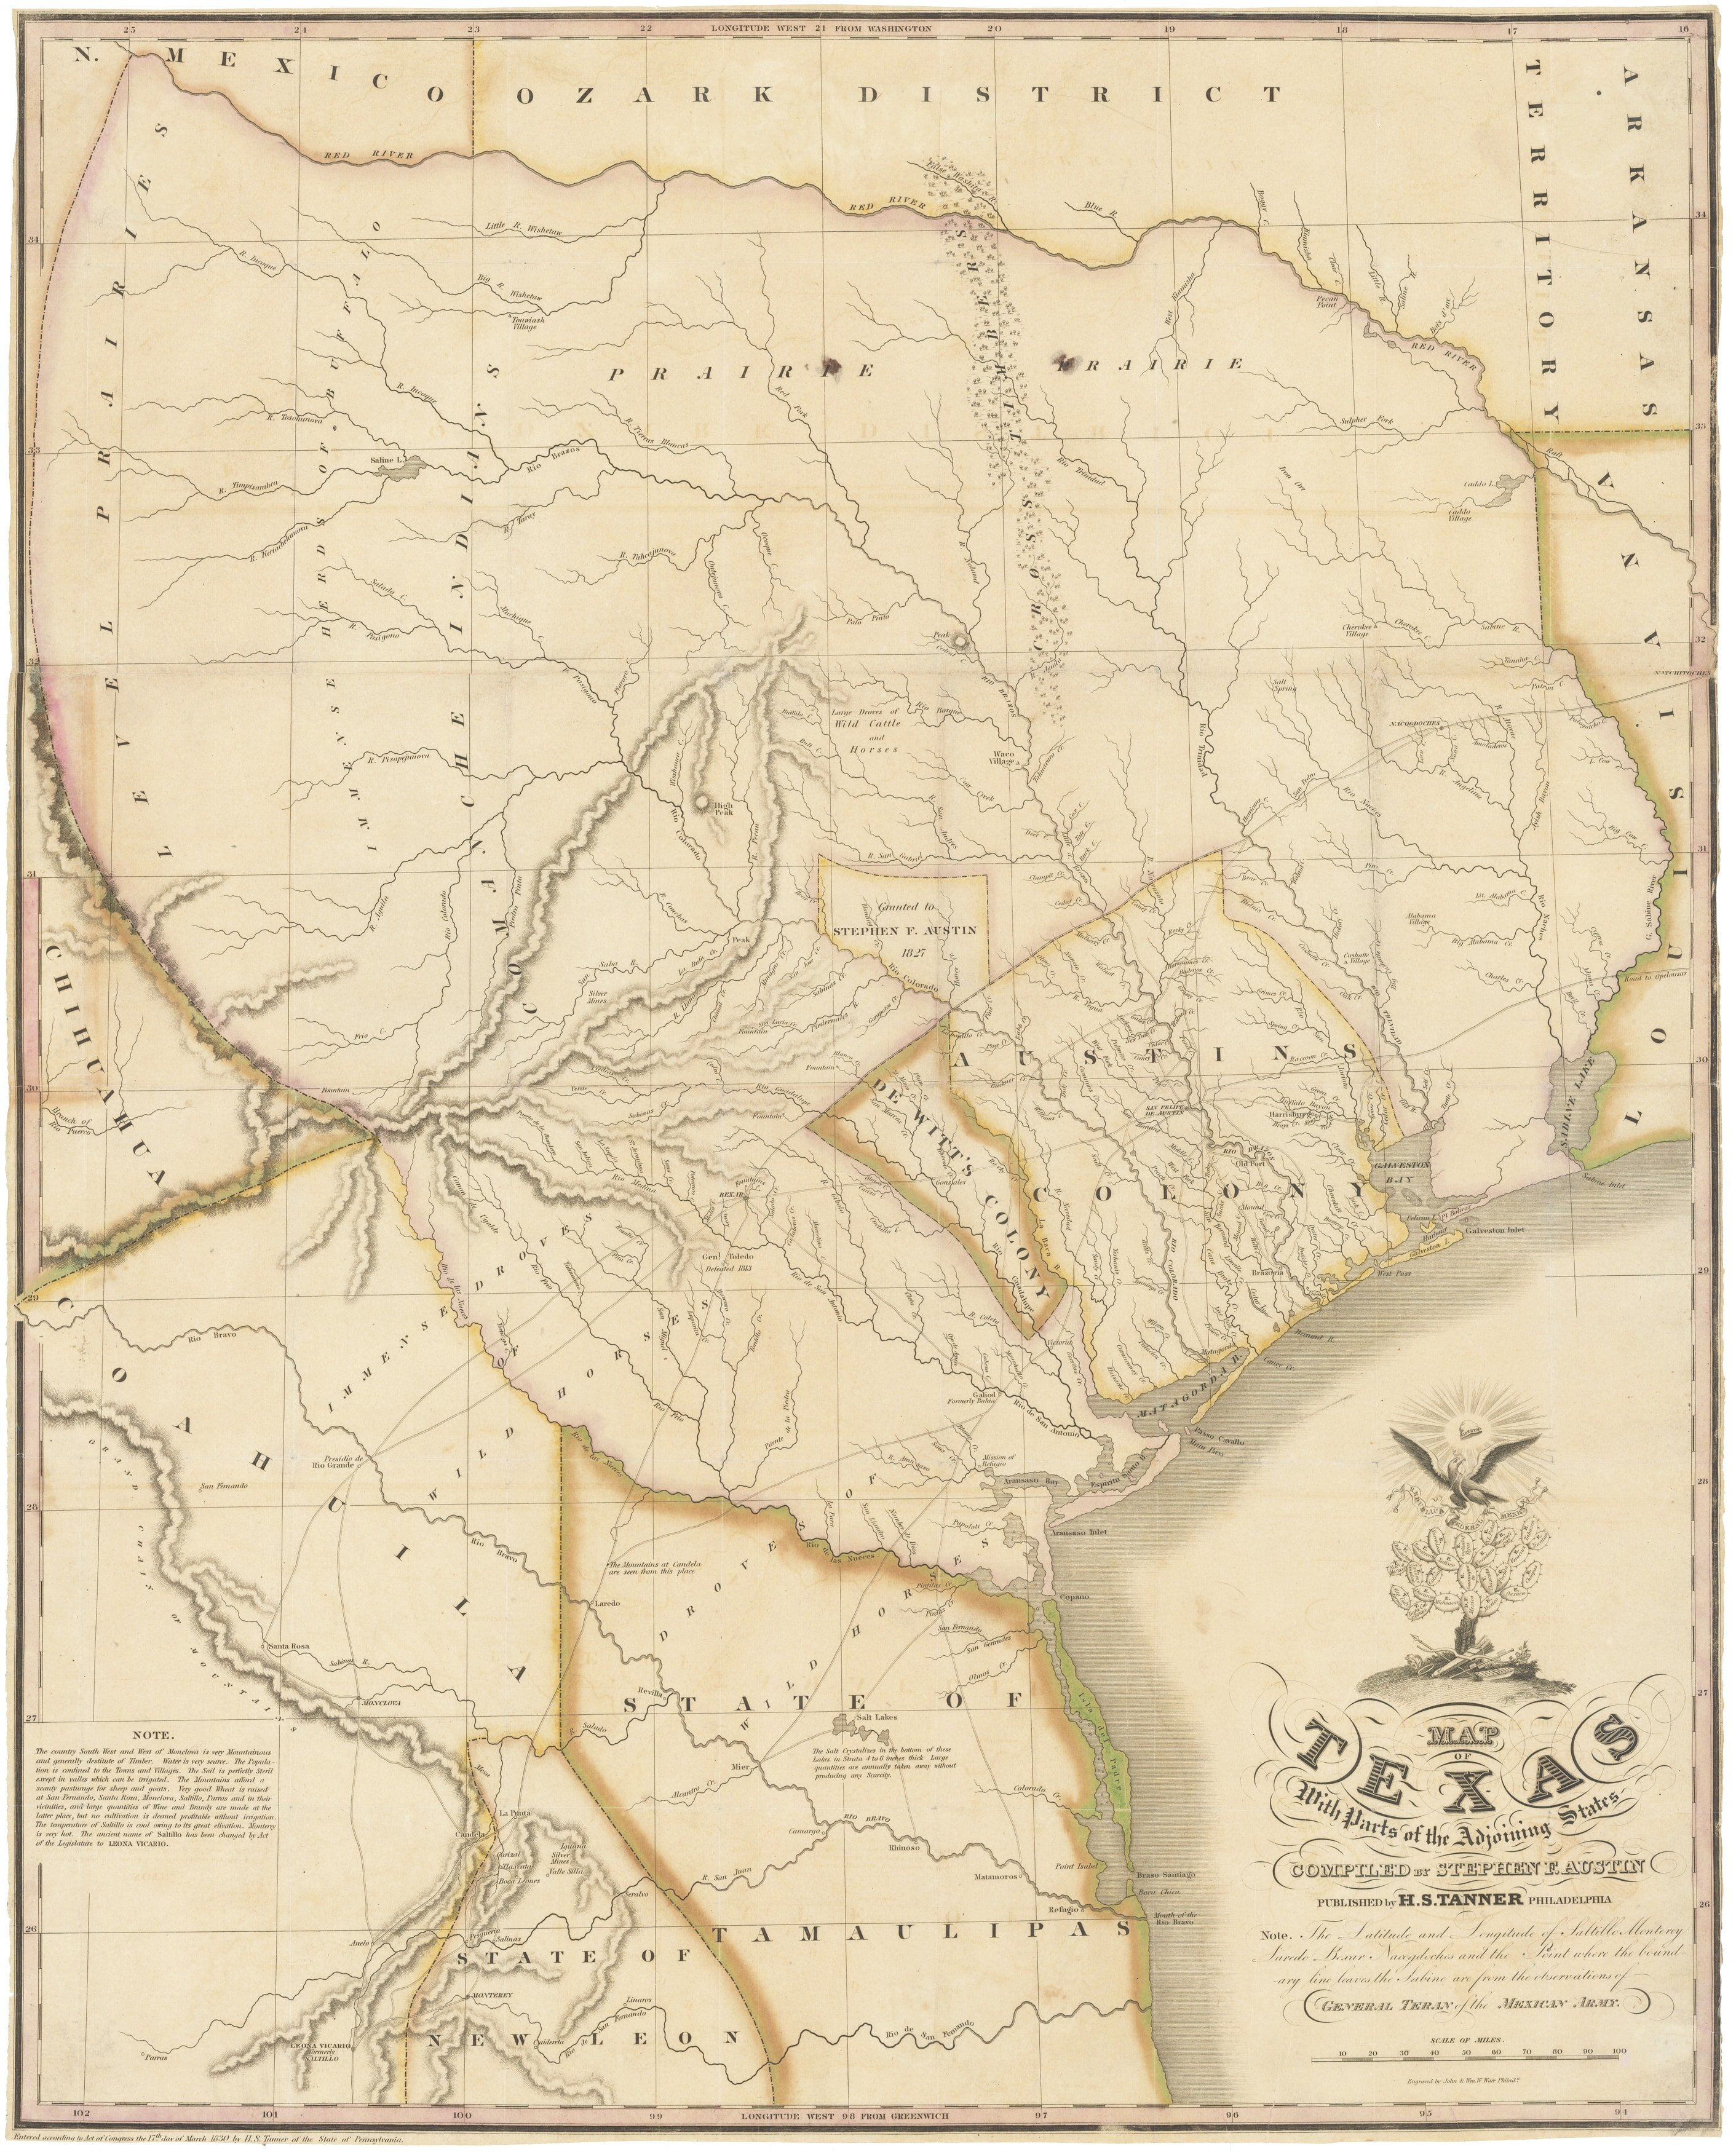 Map Of Texas Showing Austin.1830 First Edition Of The Austin Map Of Texas The Map Of